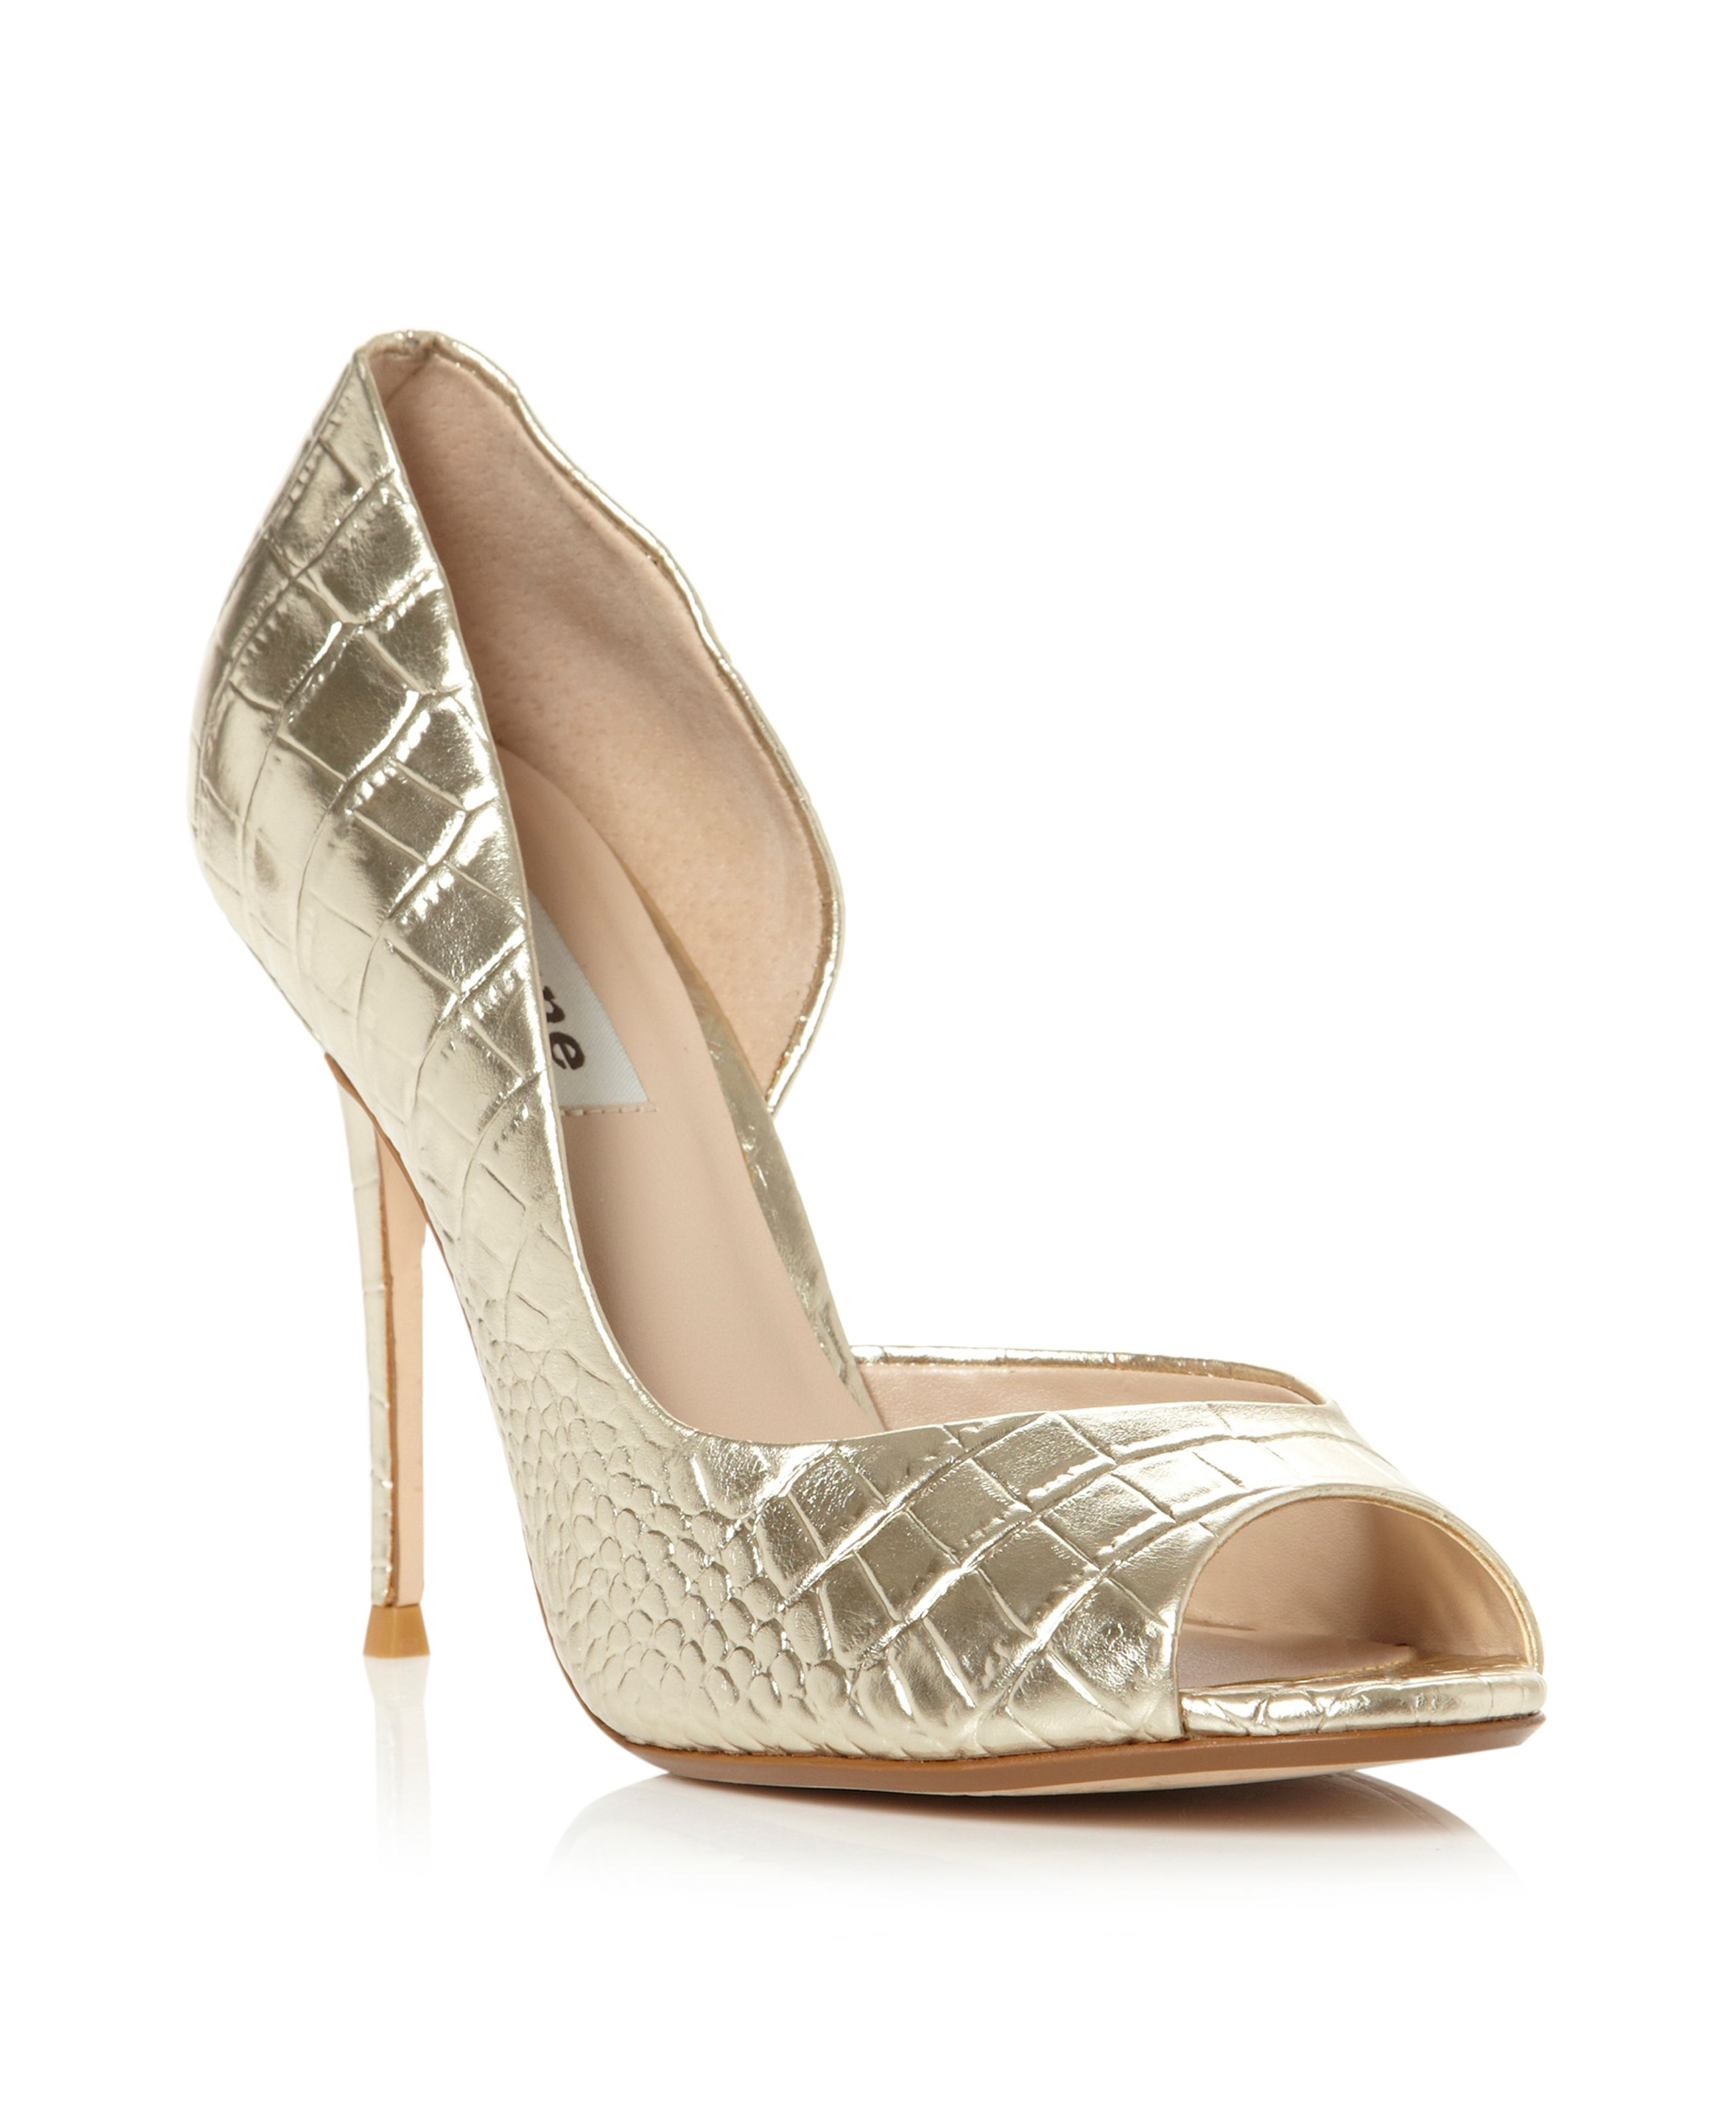 Deluxe metallic croc dorsay peeptoe shoes